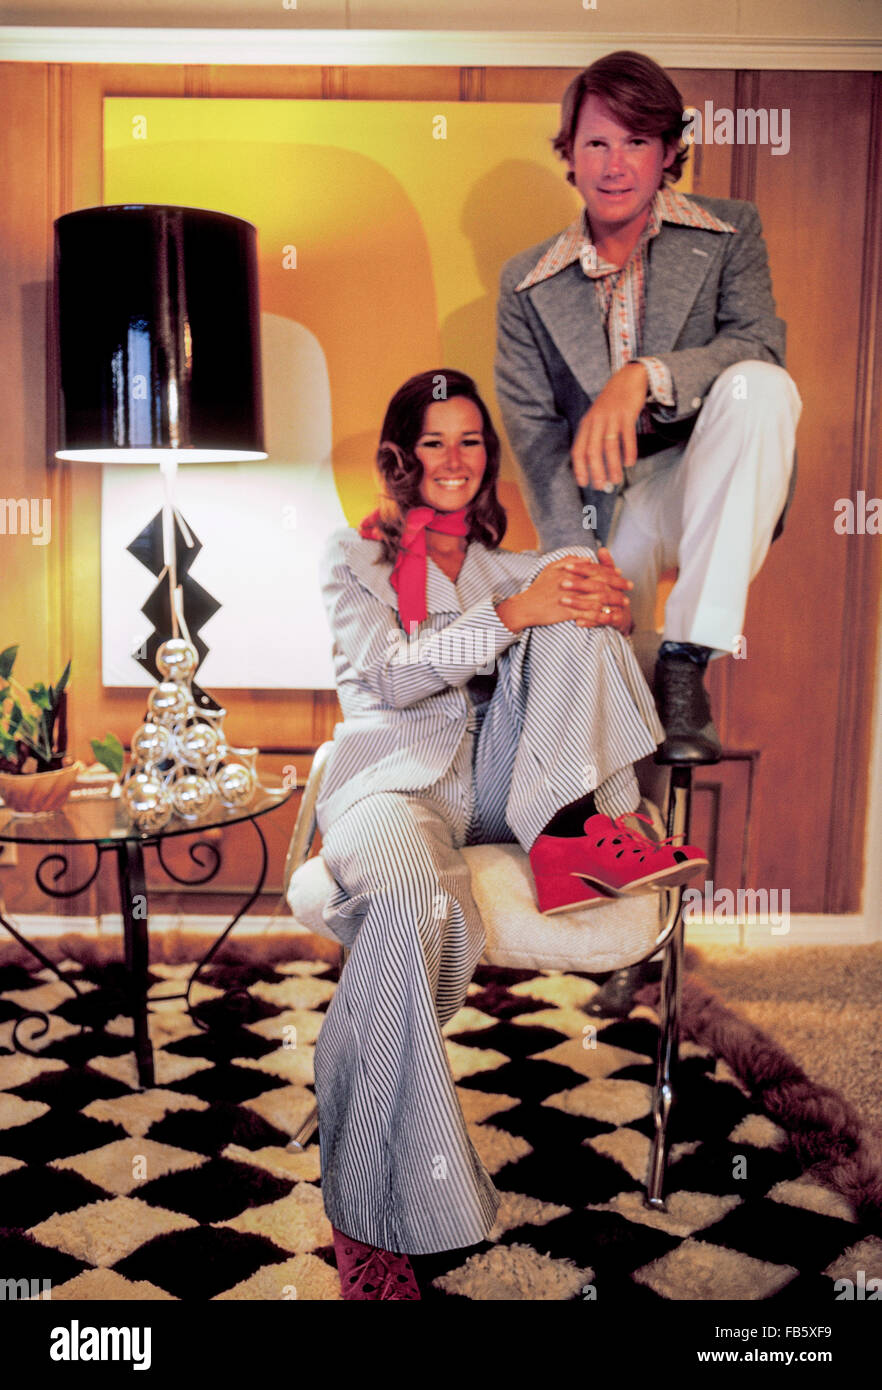 A young California couple pose for an indoor portrait in clothing and with home furnishings fashionable in the early - Stock Image